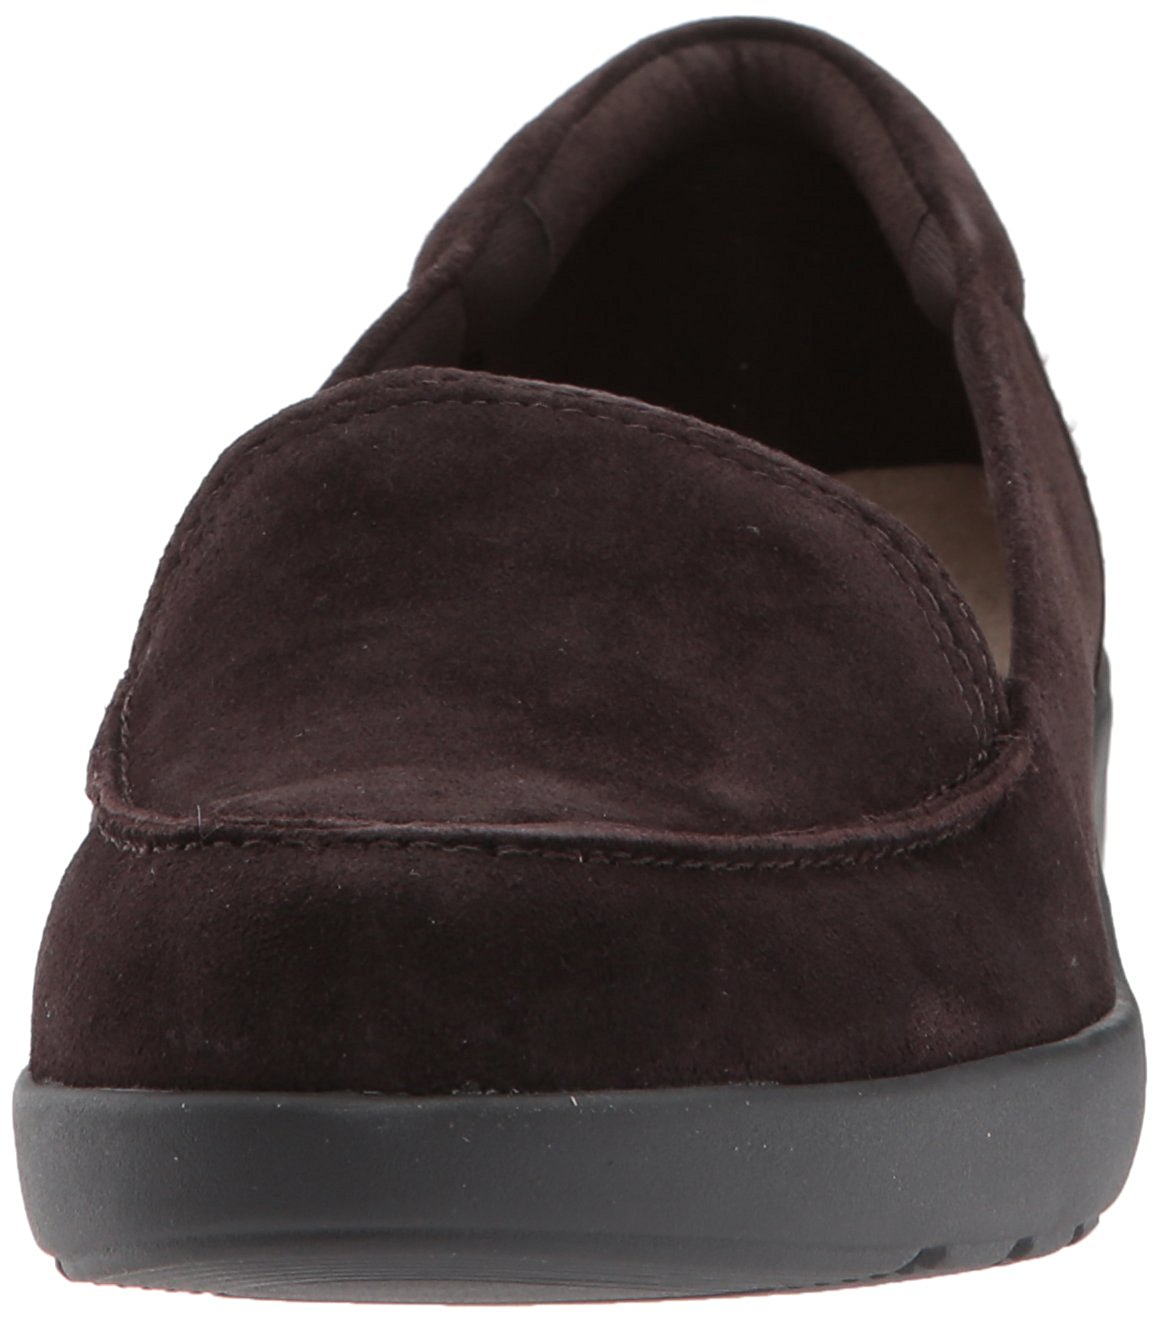 3a30301e127 Easy Spirit Womens Karin Leather Closed Toe Loafers